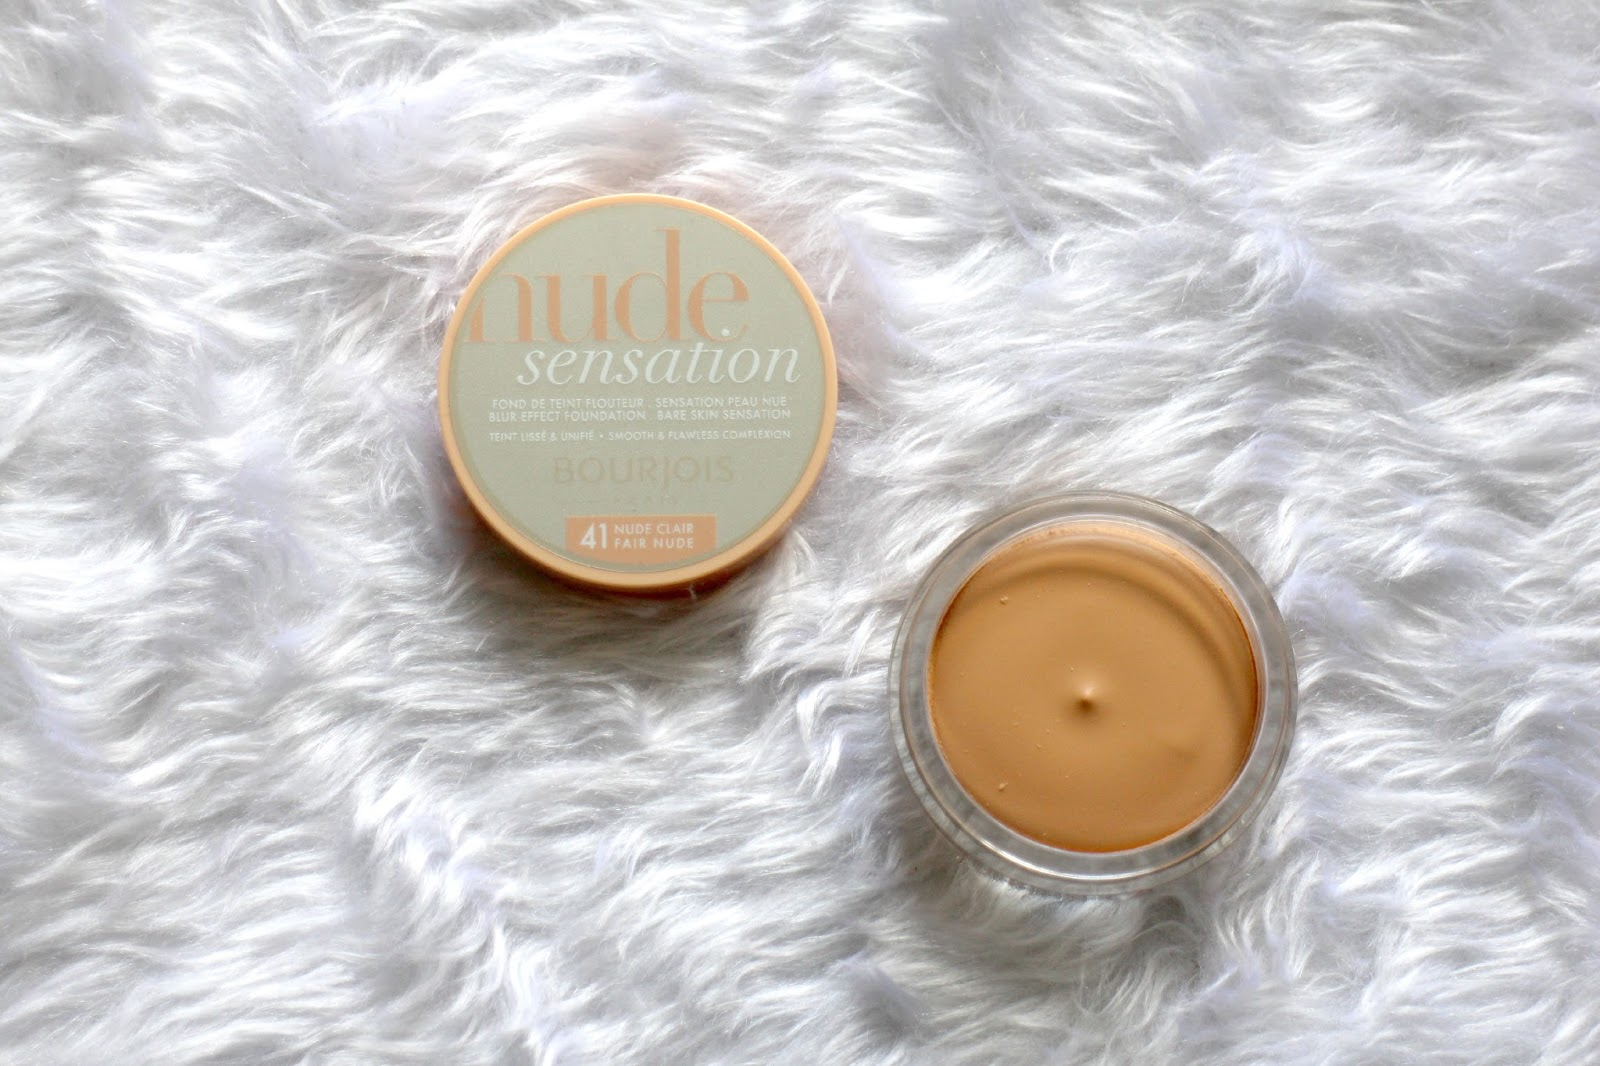 Bourjois Nude Sensation Blur Effect Foundation